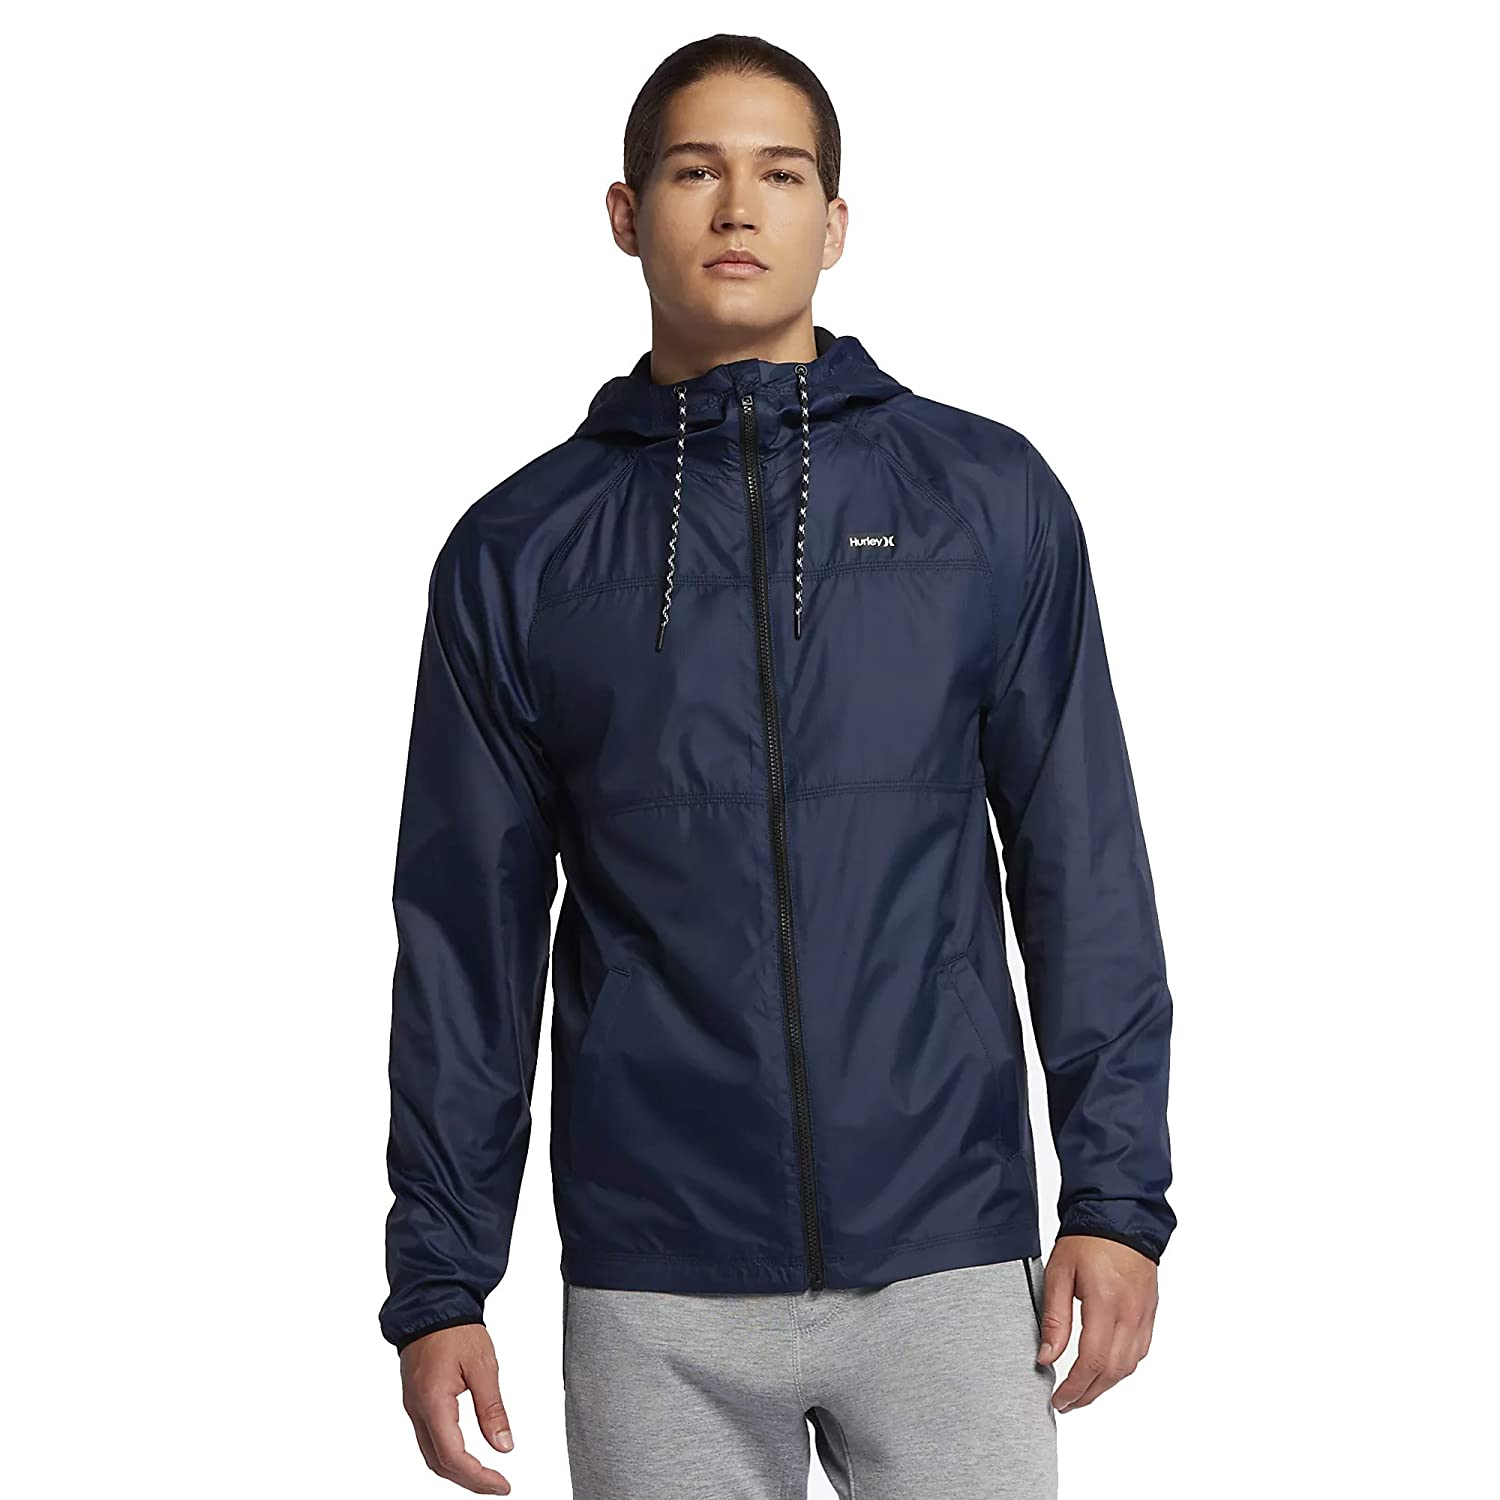 fc32e2945dd Amazon.com  Hurley MJK0002160 Men s Protect Solid Jacket  Clothing